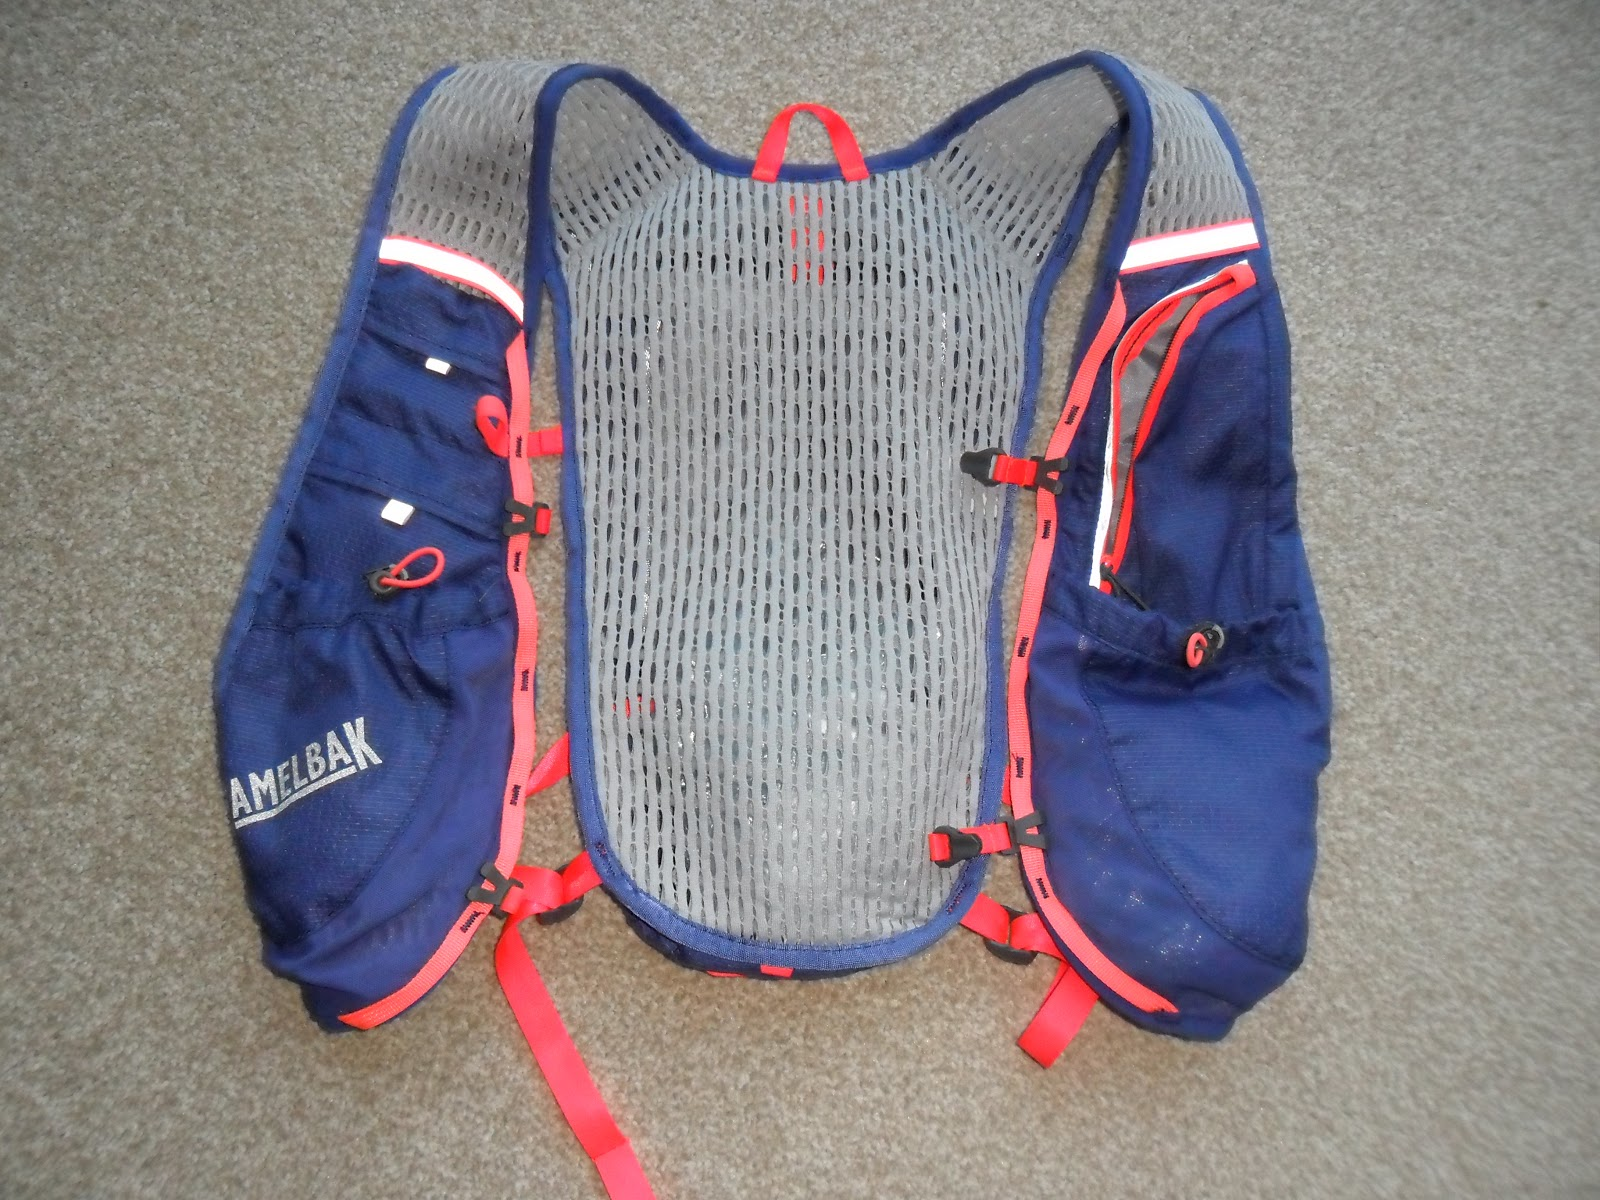 a3087f2805 To this end, I have been using a Circuit Race Vest, kindly provided by  Camelbak UK, for the majority of my recent adventures and I'd like to share  a few ...